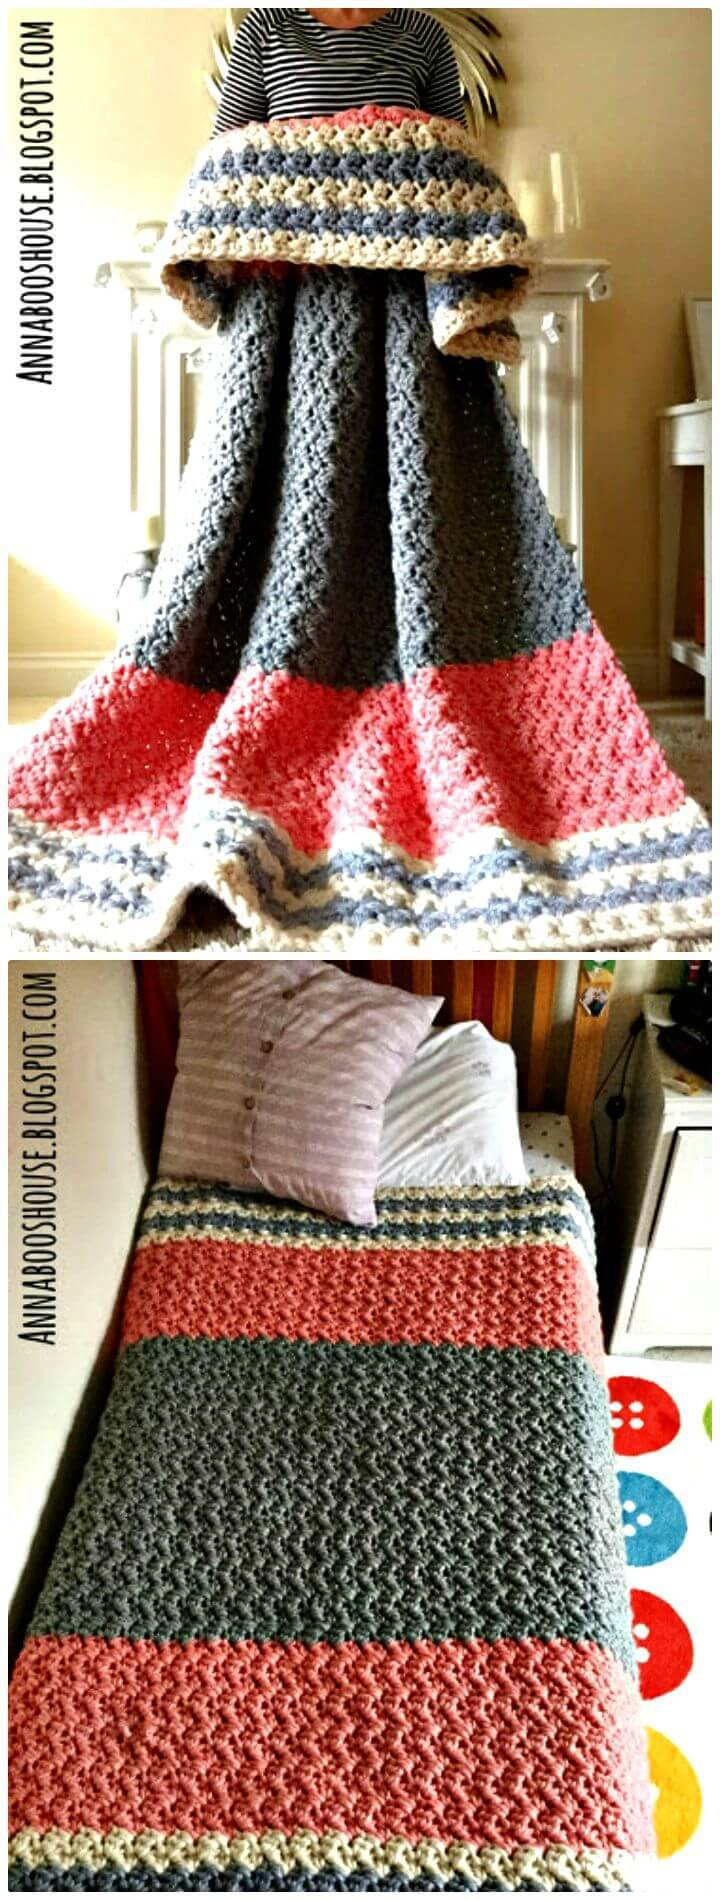 Free crochet The Enormous Squishy Blanket Pattern